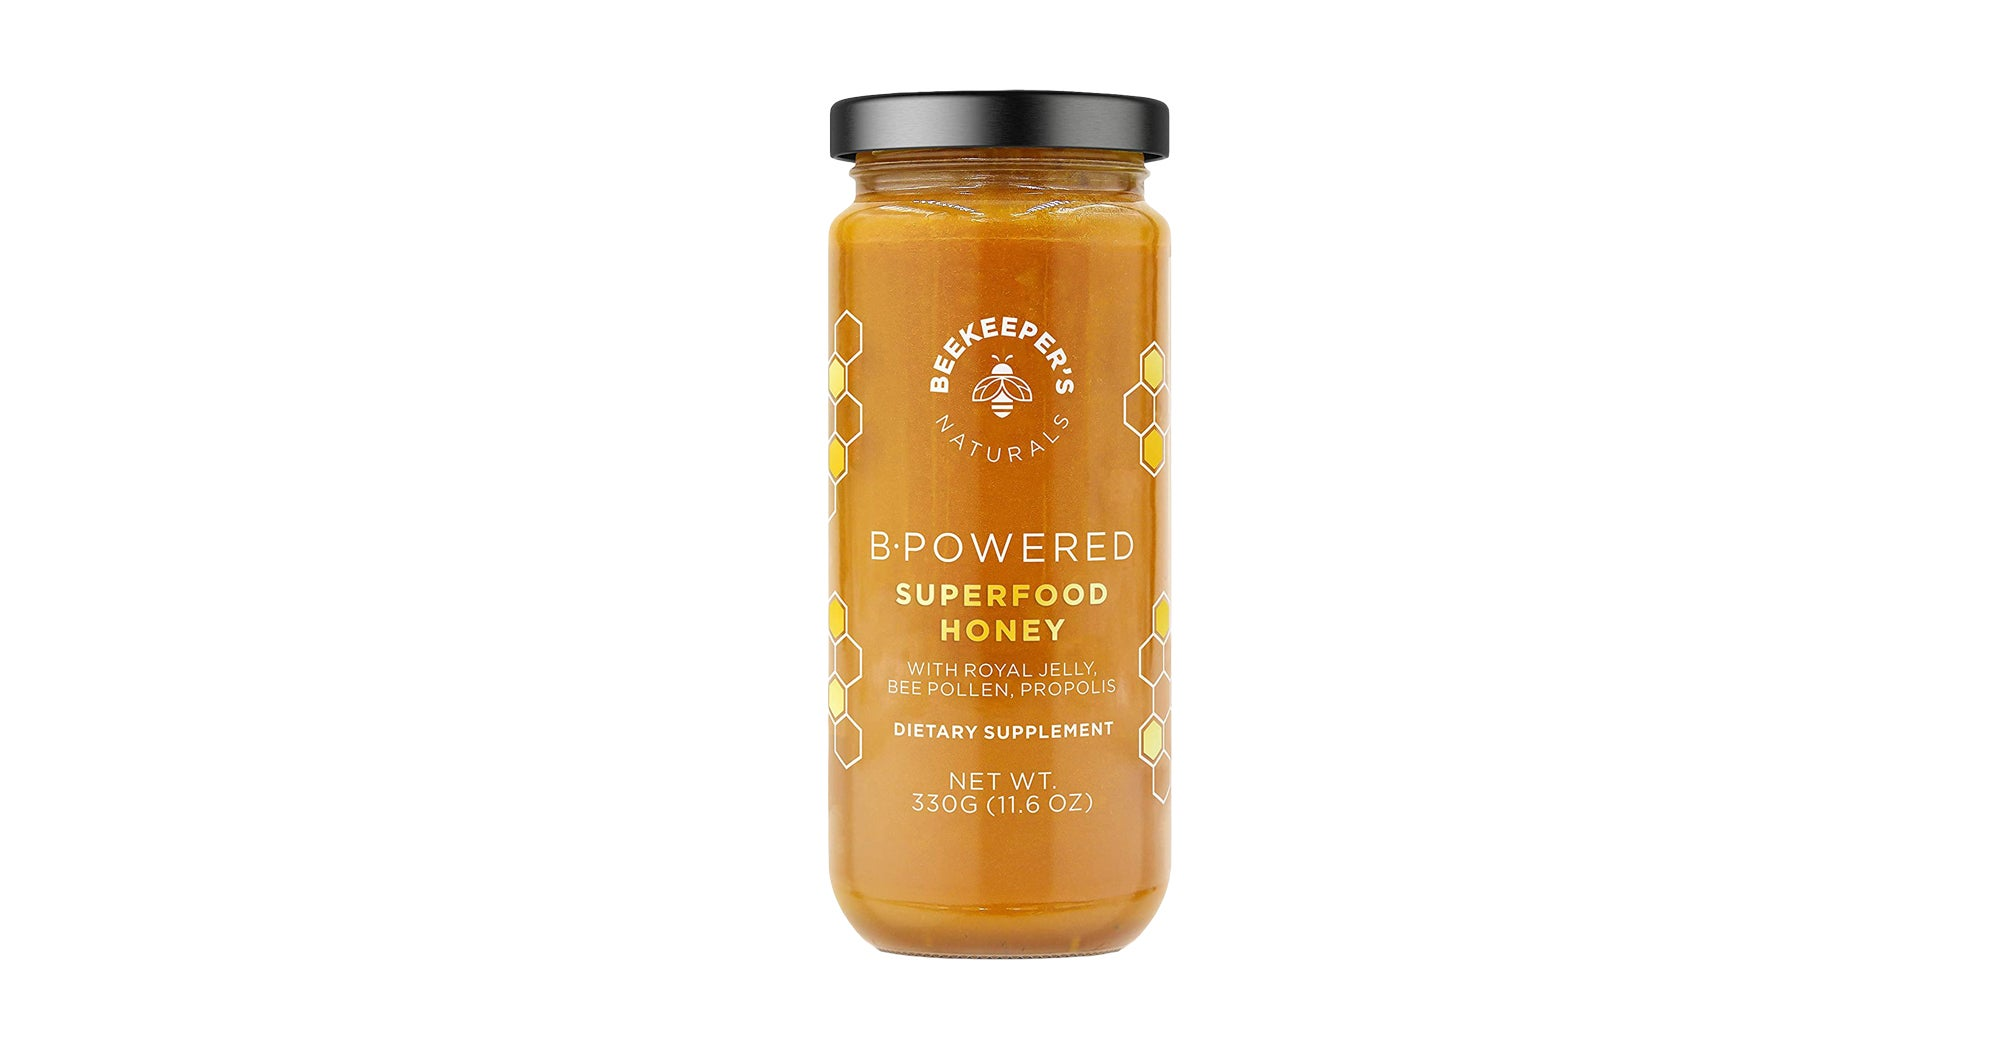 www.refinery29.com: Why Does This Honey Keep Popping Up In Celebrity Beauty Tutorials?